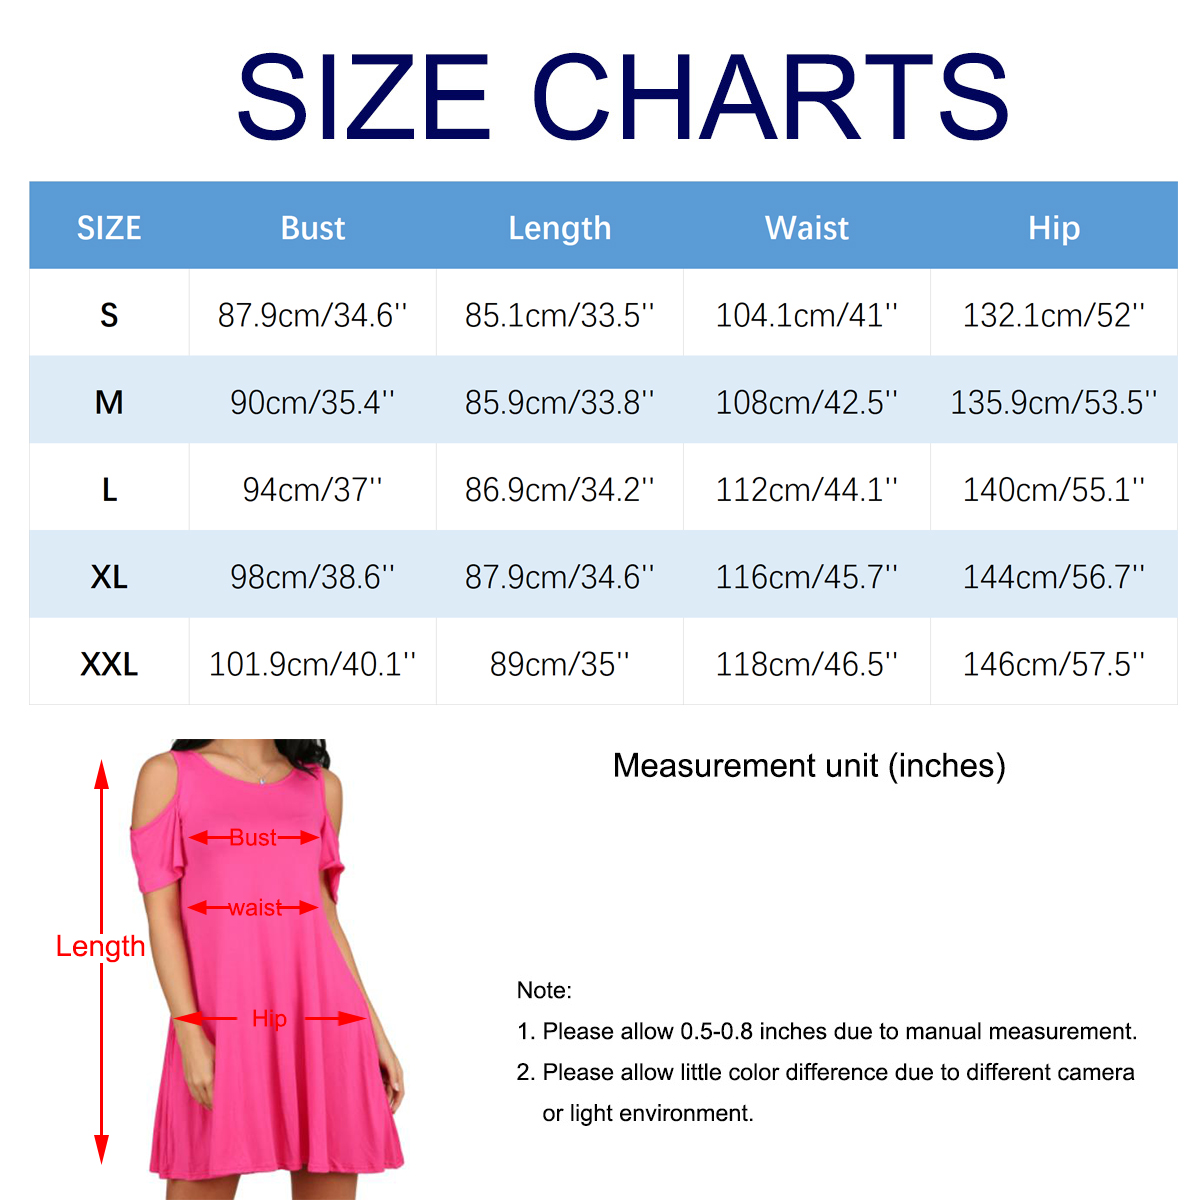 e25a536af6679 Ypser Women s Cold Shoulder Jersey Dress with Pocket Swing Tshirt Dresses  Loose Tunic Top-in Dresses from Women s Clothing   Accessories on  Aliexpress.com ...